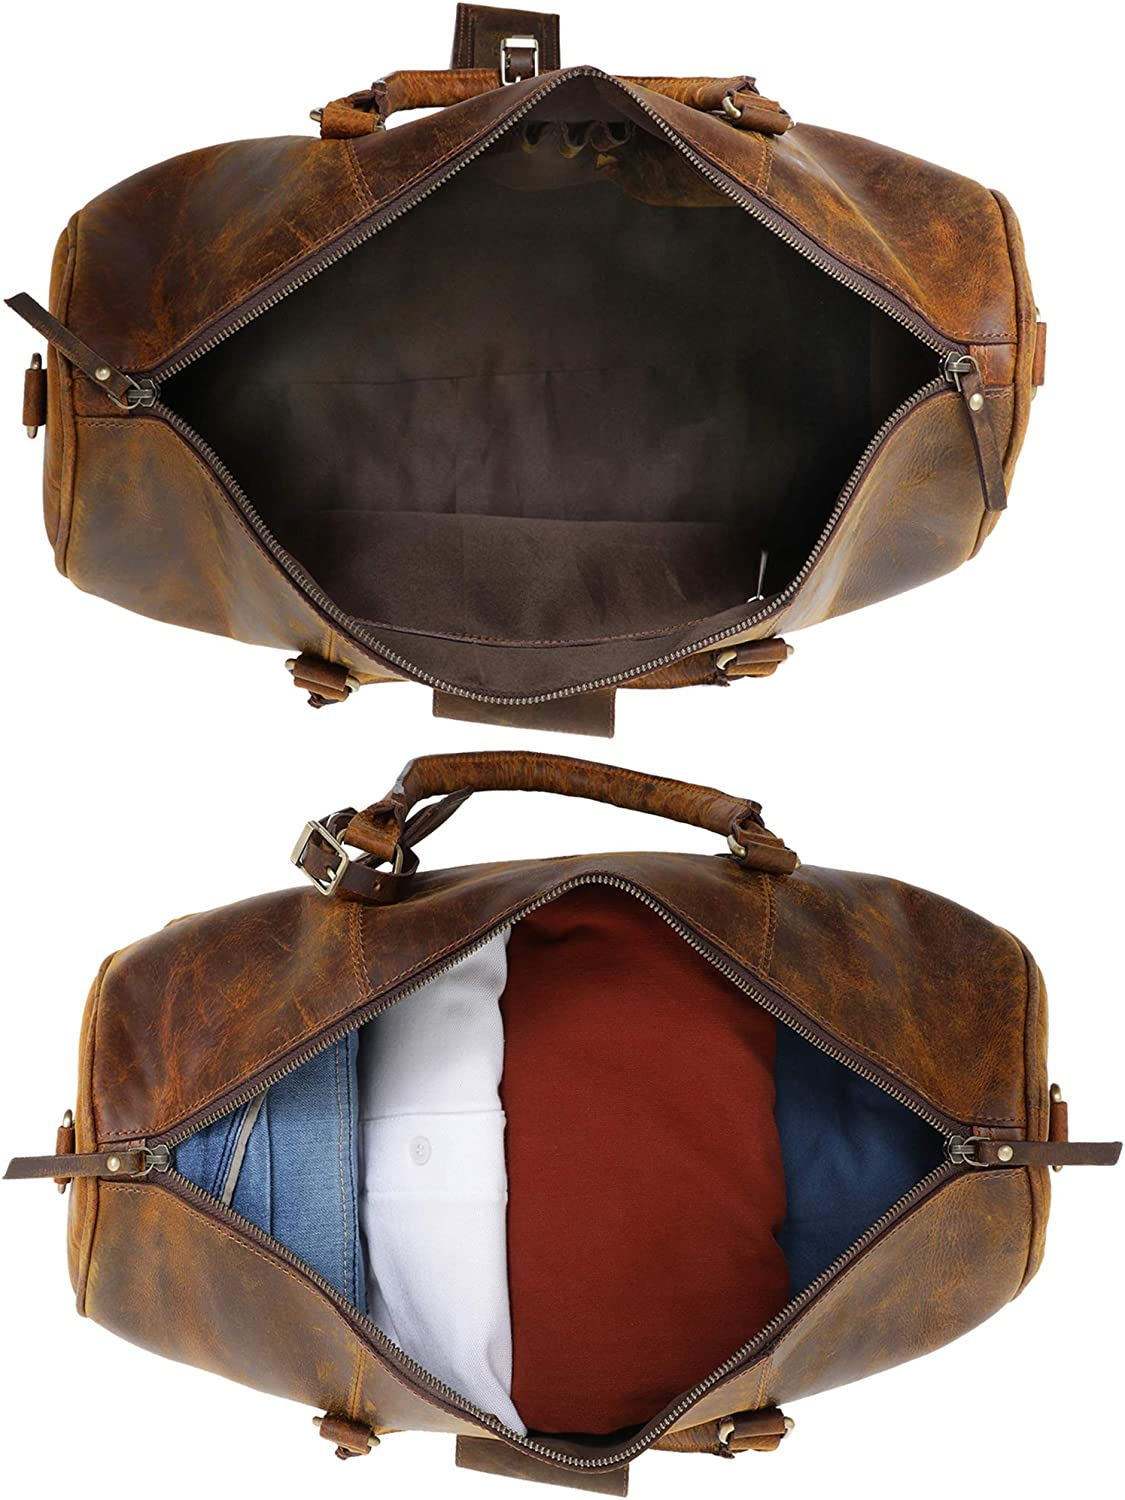 Airplane Underseat Carry On Luggage by RusticTown Leather Duffel Bags for Men